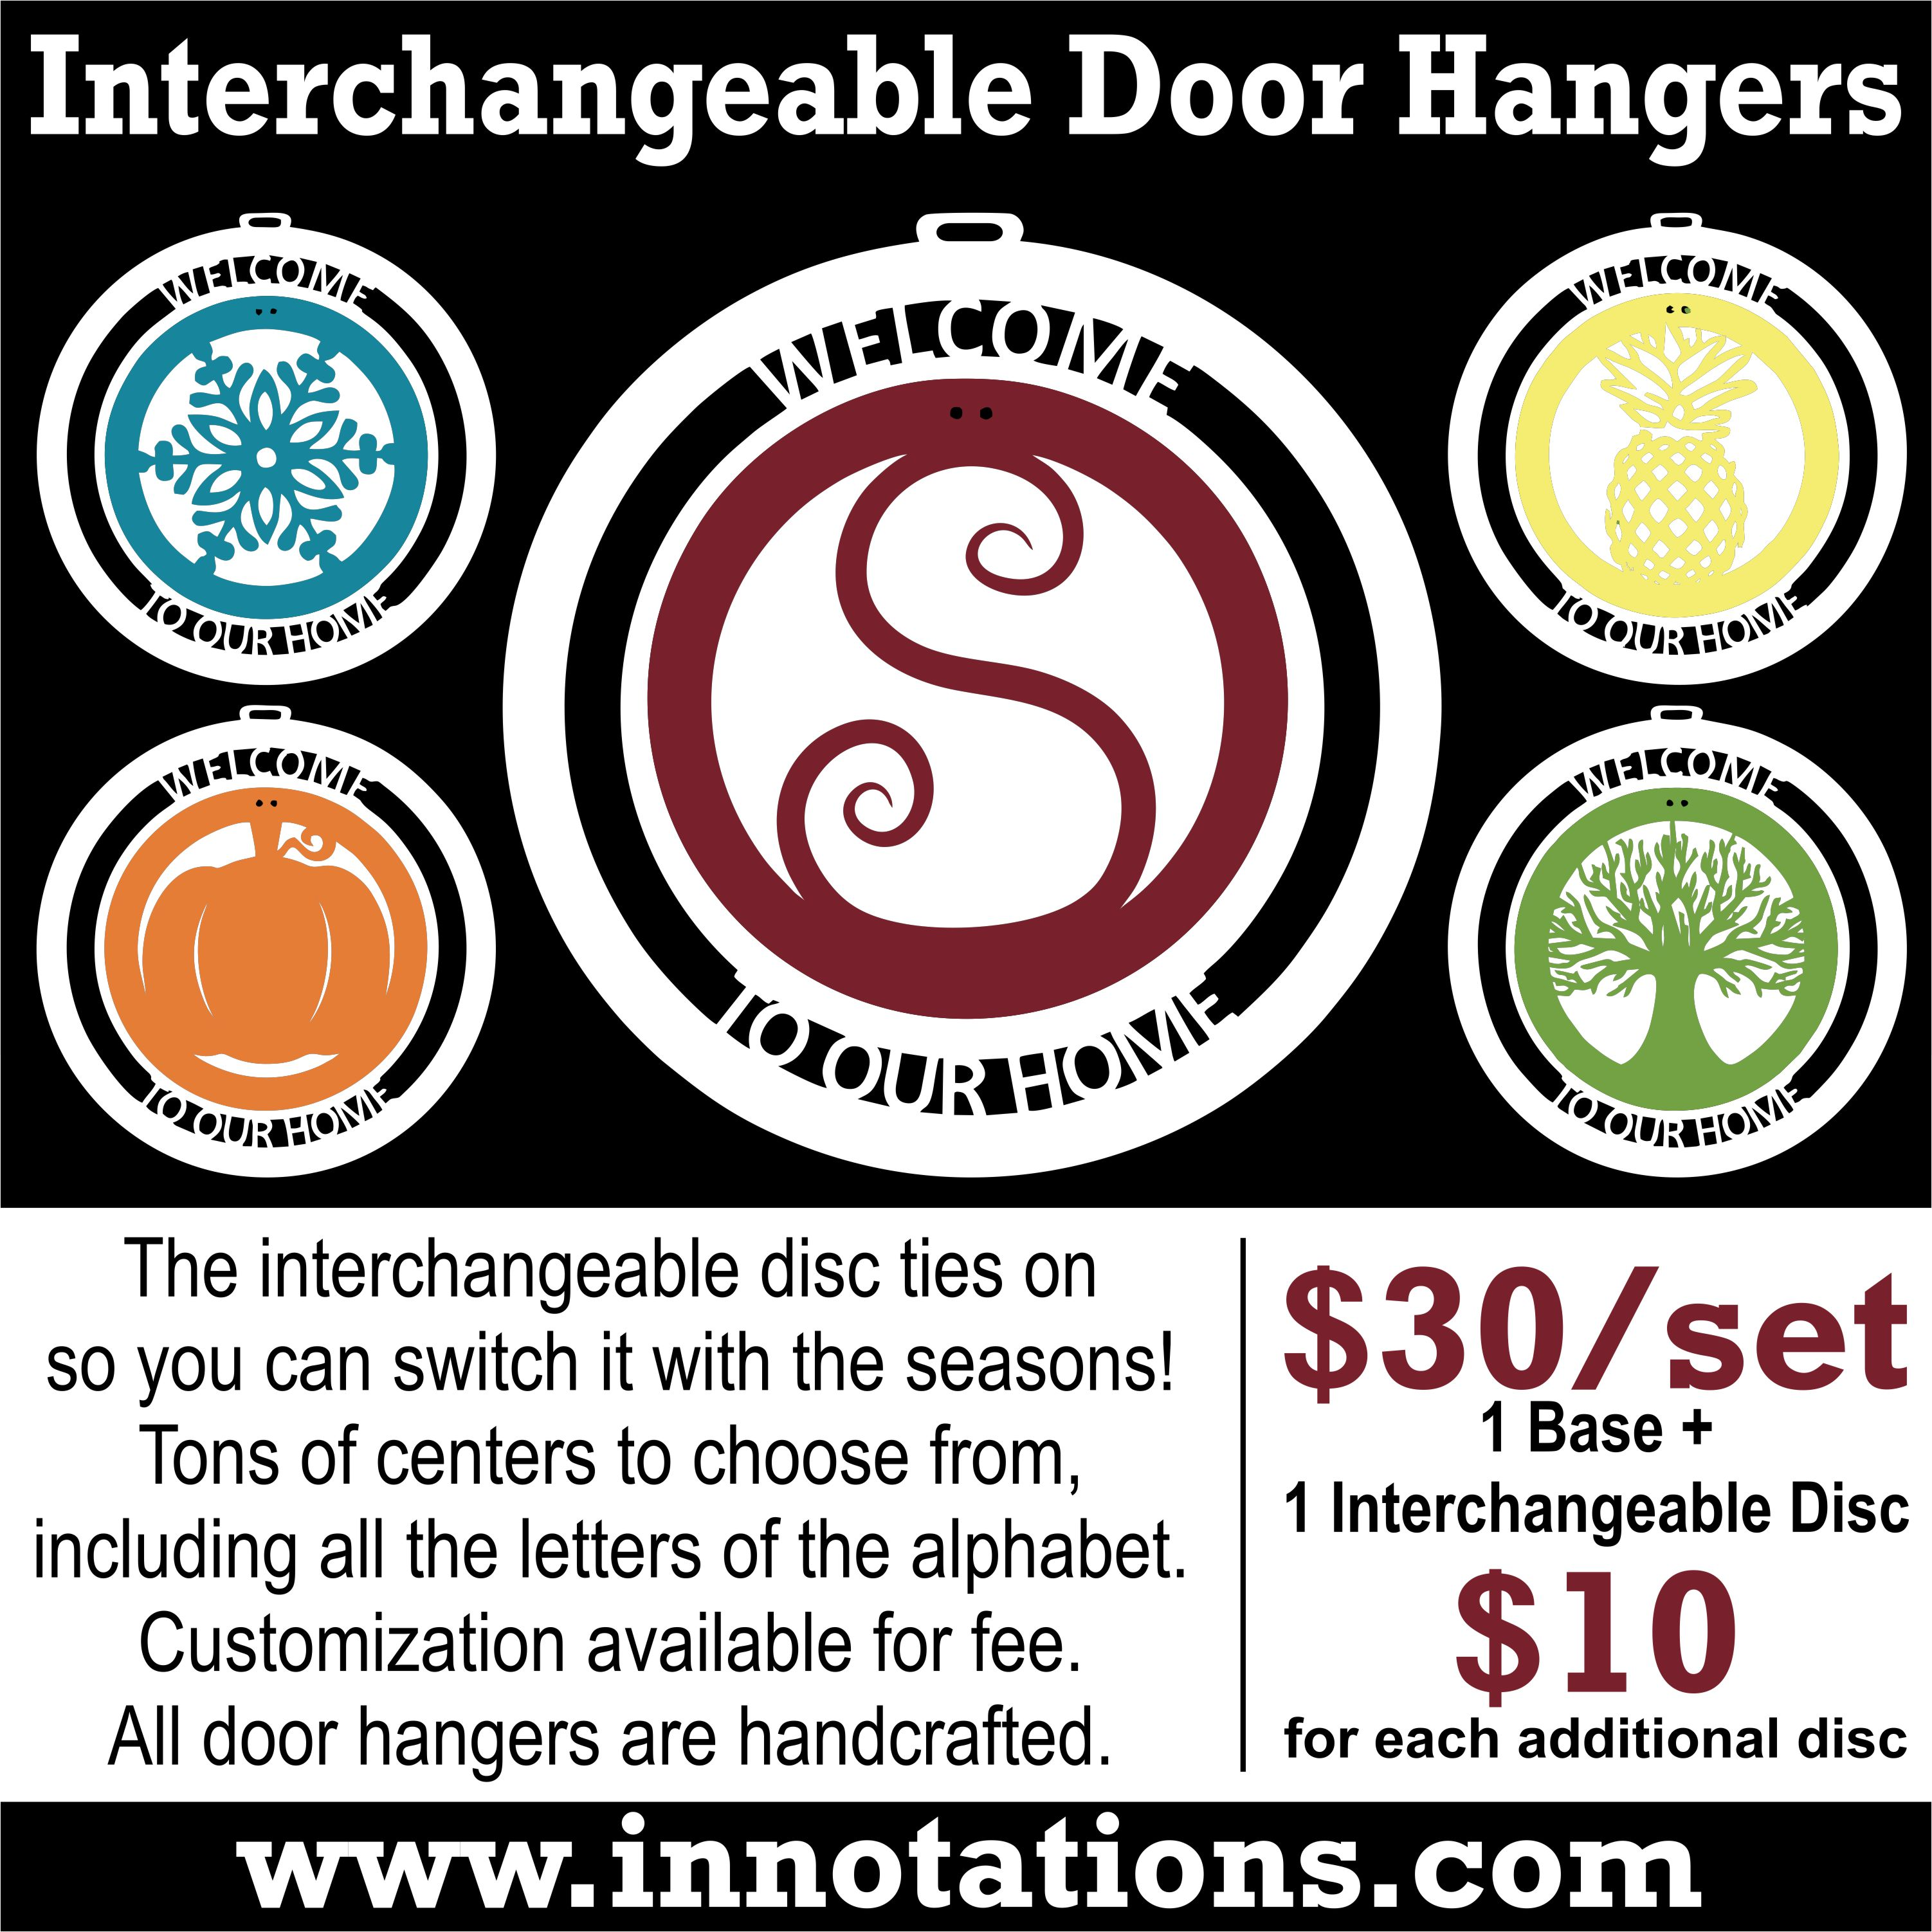 Interchangeable Door Hangers